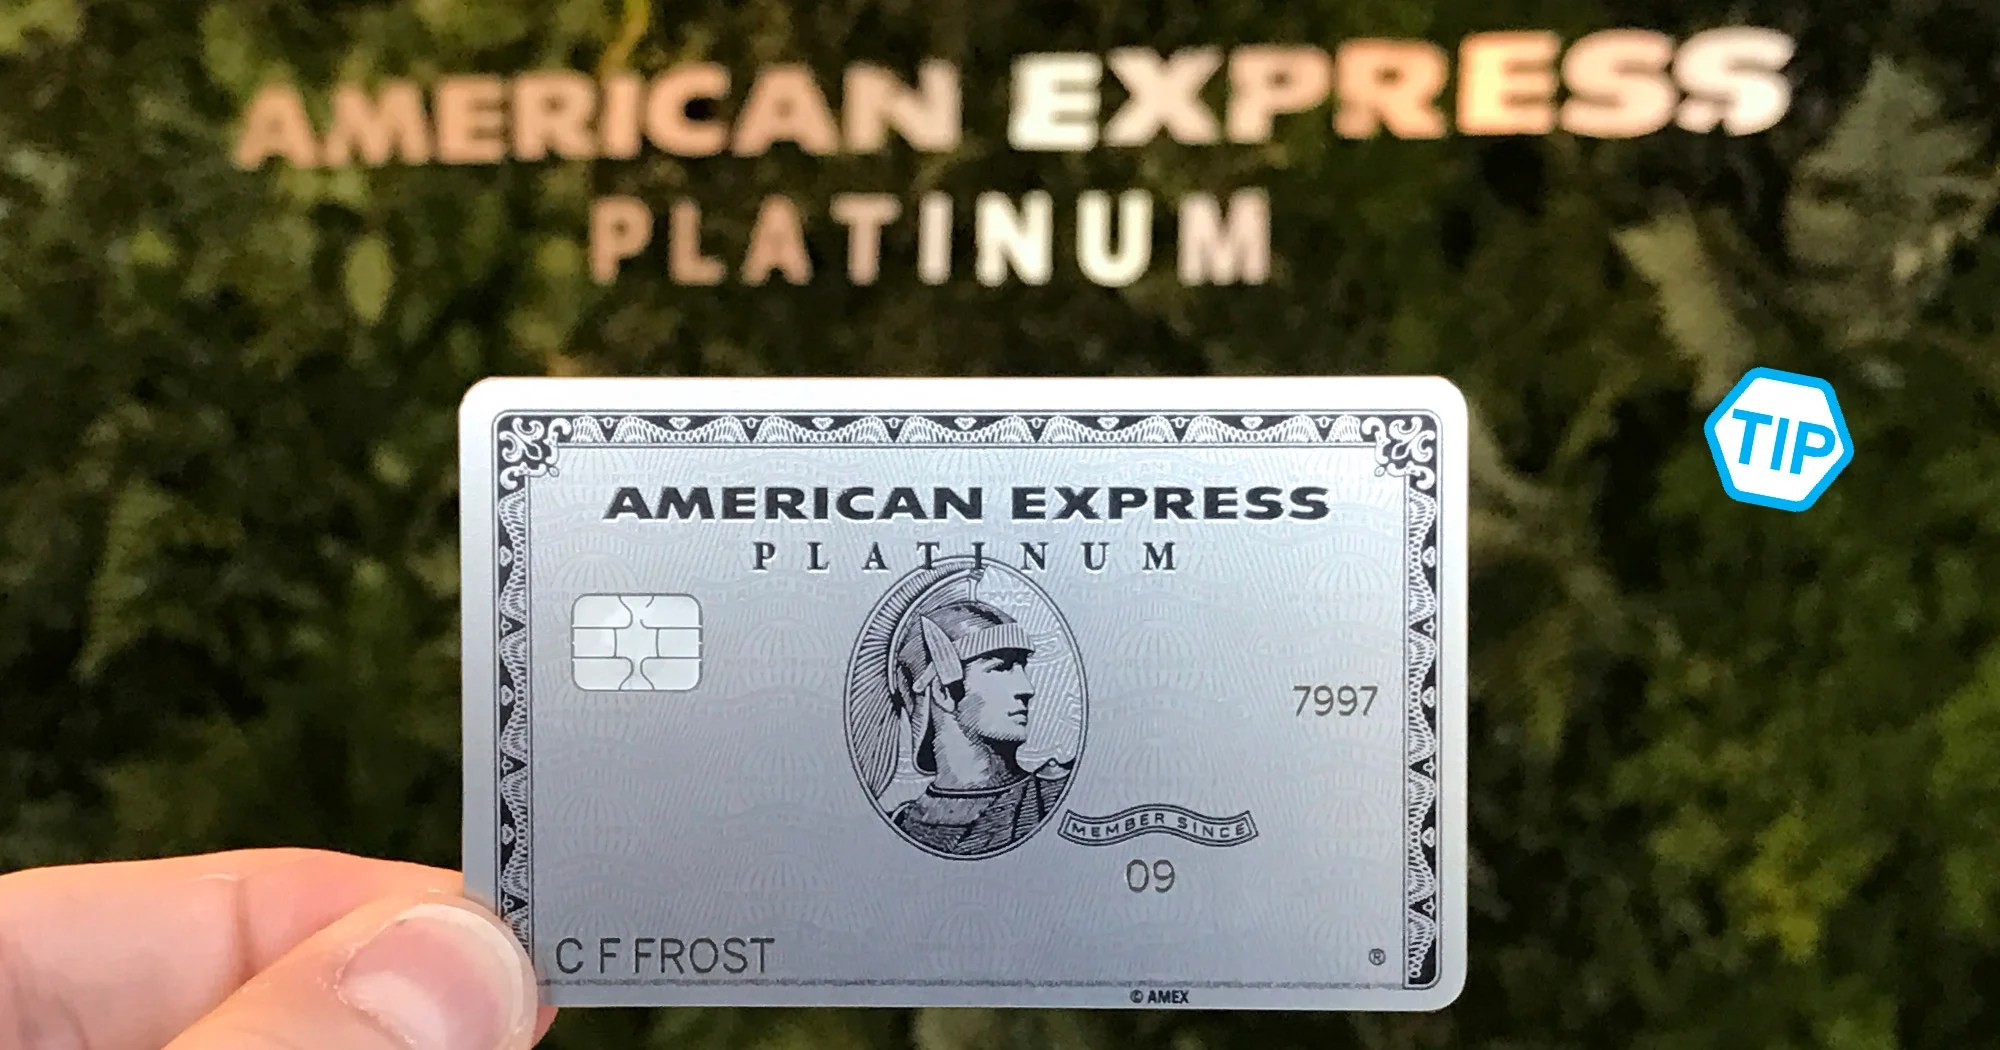 How to Use Amex Airline Fee Credit on an Airline Gift Card